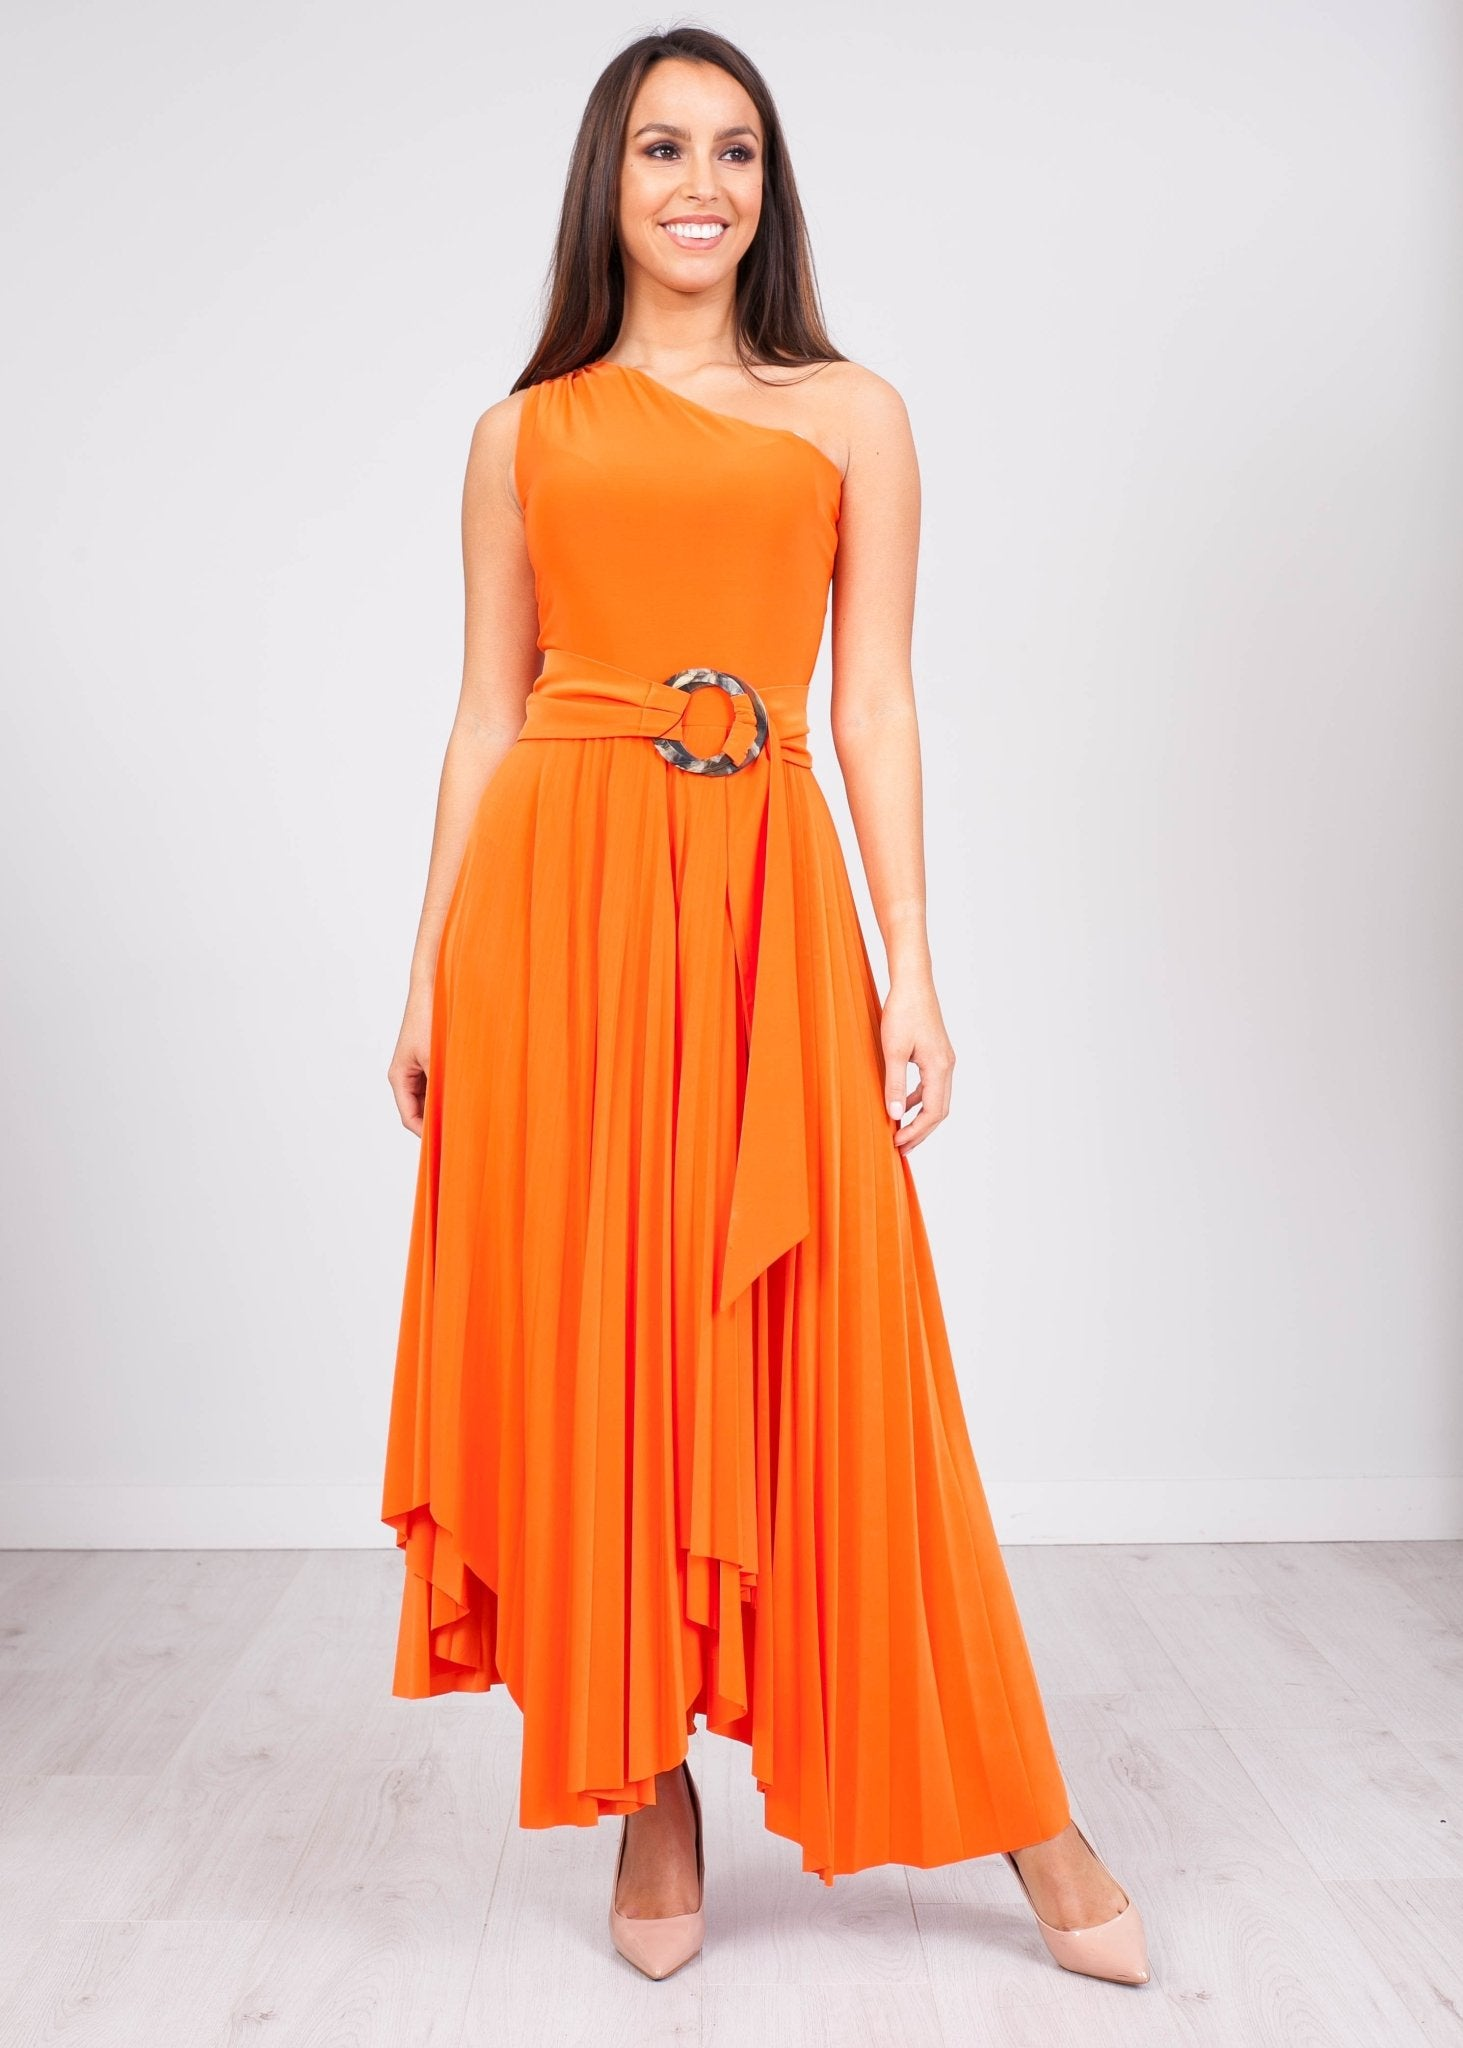 Eva Orange One Shoulder Dress - The Walk in Wardrobe